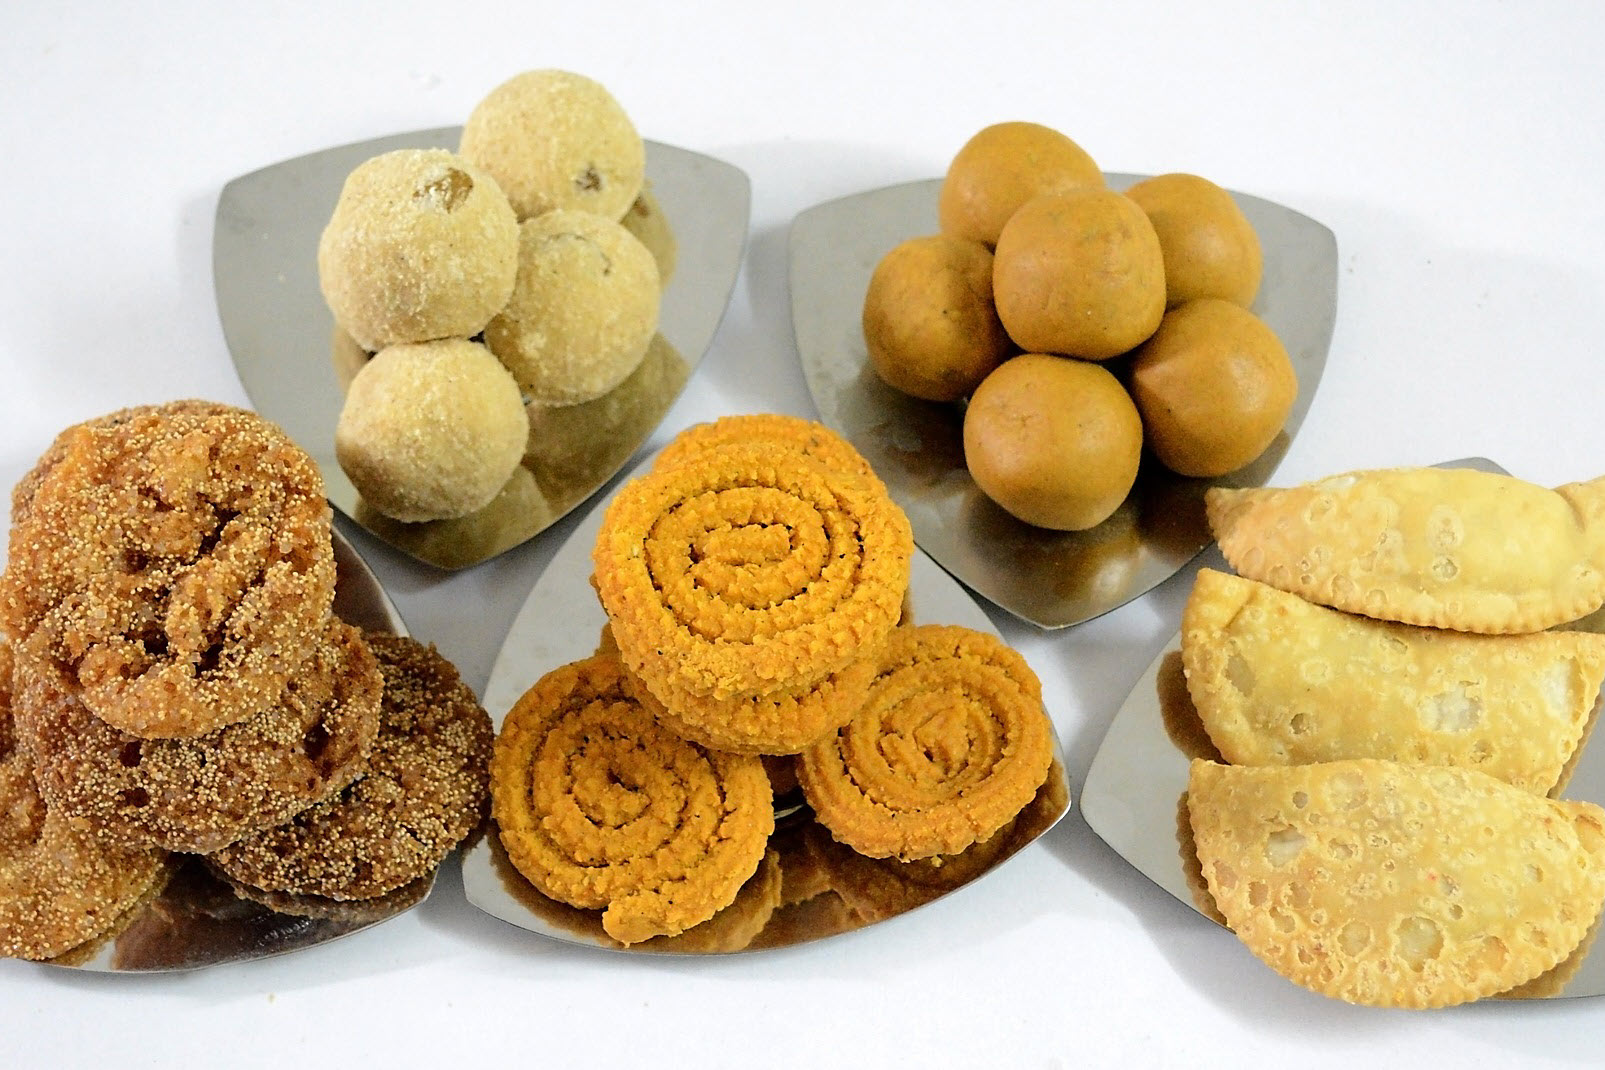 examples of Indian foods often served at Diwali celebrations